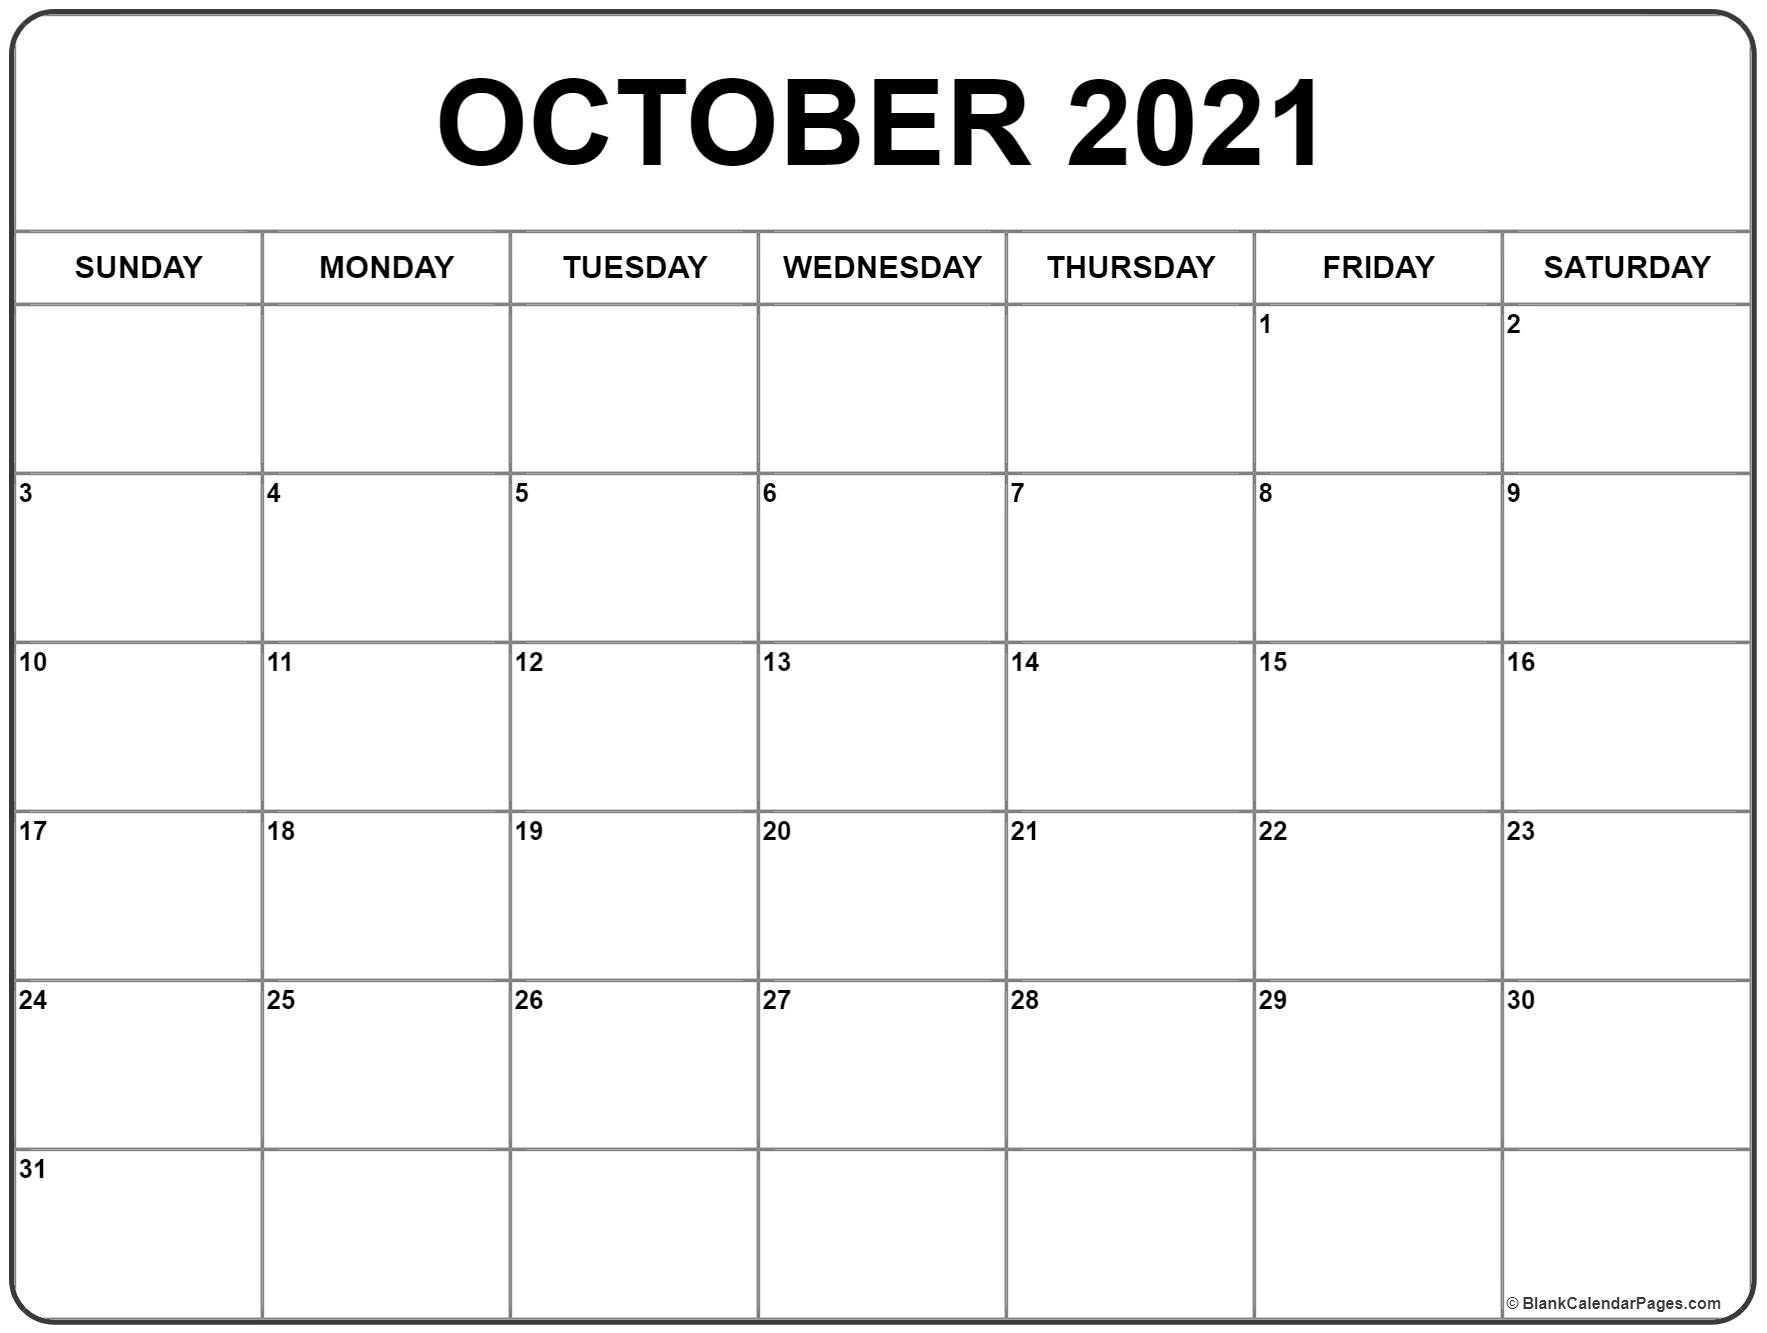 Take October 2021 Calendar Printable Free